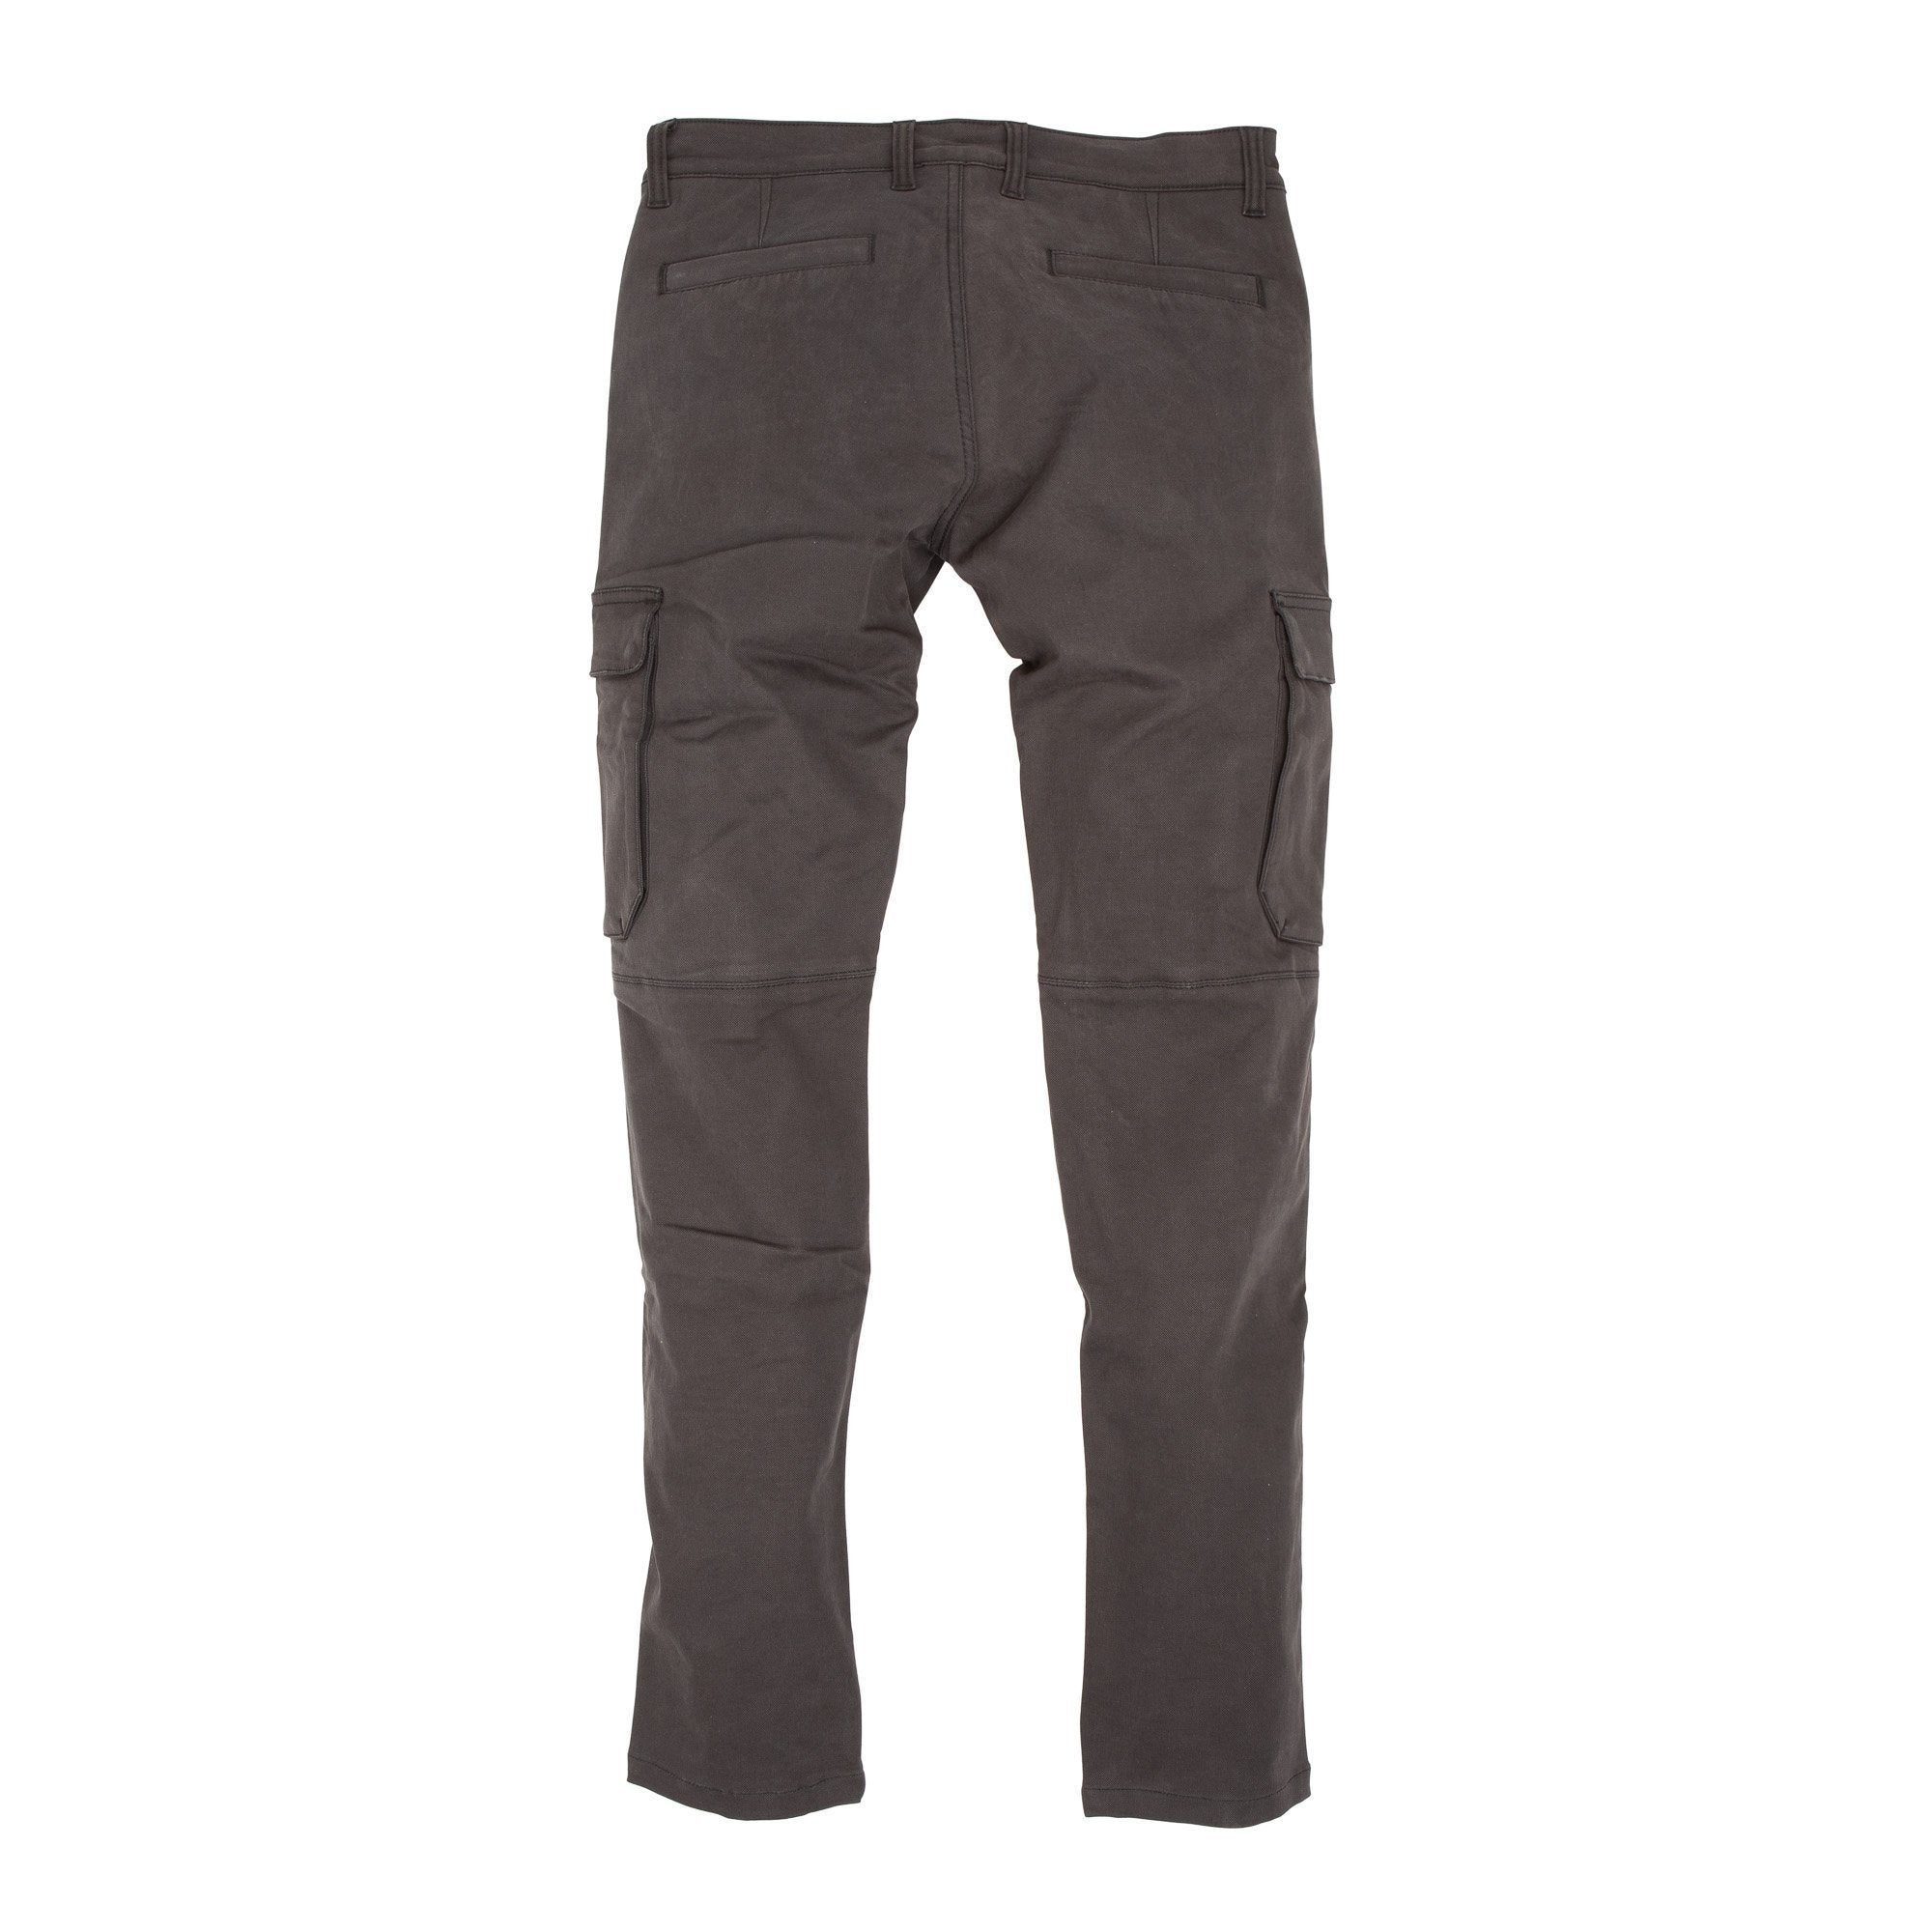 Resurgence Gear Inc. - Resurgence Gear® 2020 Cargo PEKEV Motorcycle Trousers - Black - Men's Trousers - Salt Flats Clothing